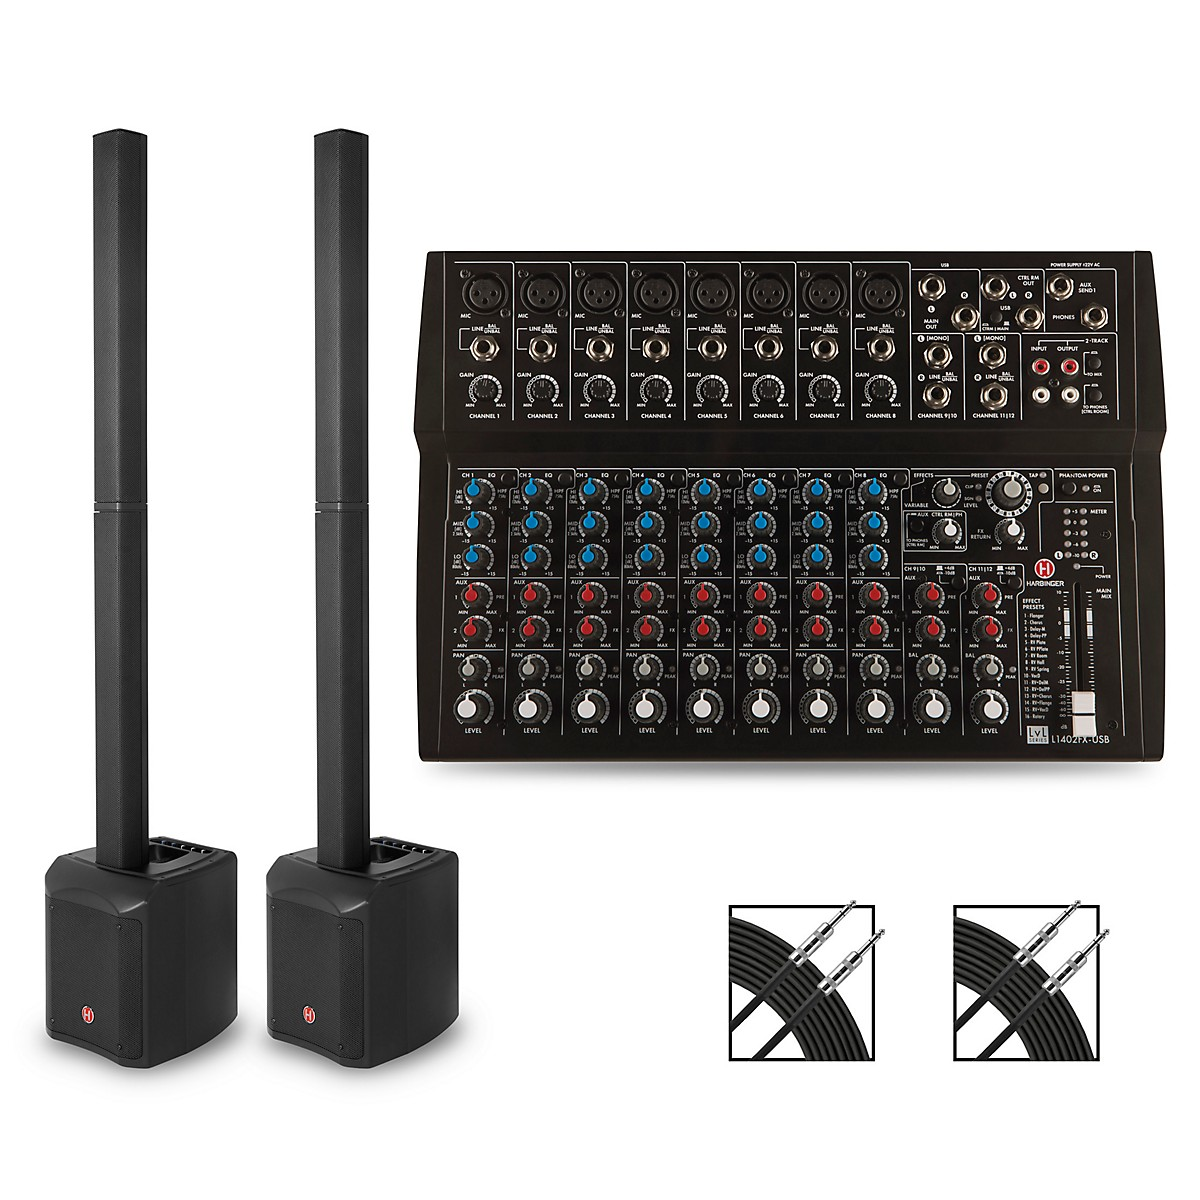 Harbinger MLS900 Personal Line Array Pair with Harbinger L1402 Mixer and Cables